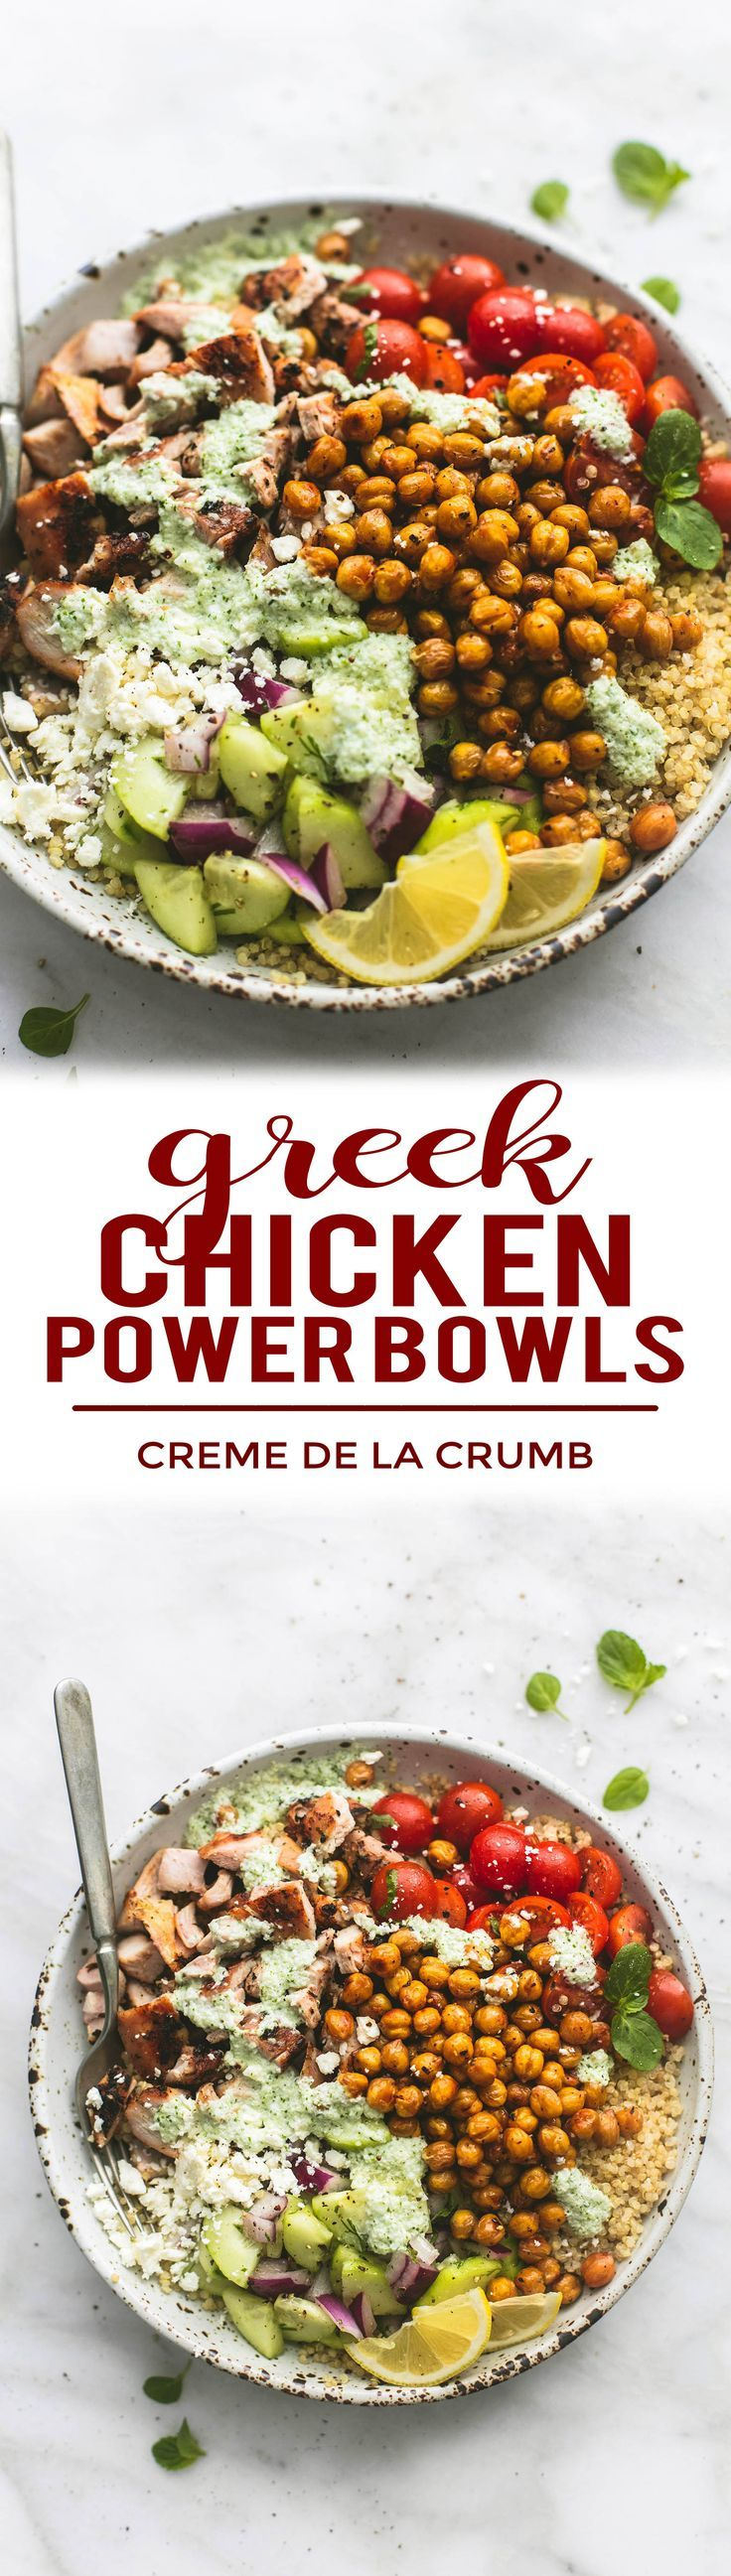 109 best greek and mediterranean food and recipes images on pinterest easy and healthy greek chicken power bowls lecremedelacrumb chickendinner healthyrecipes forumfinder Choice Image